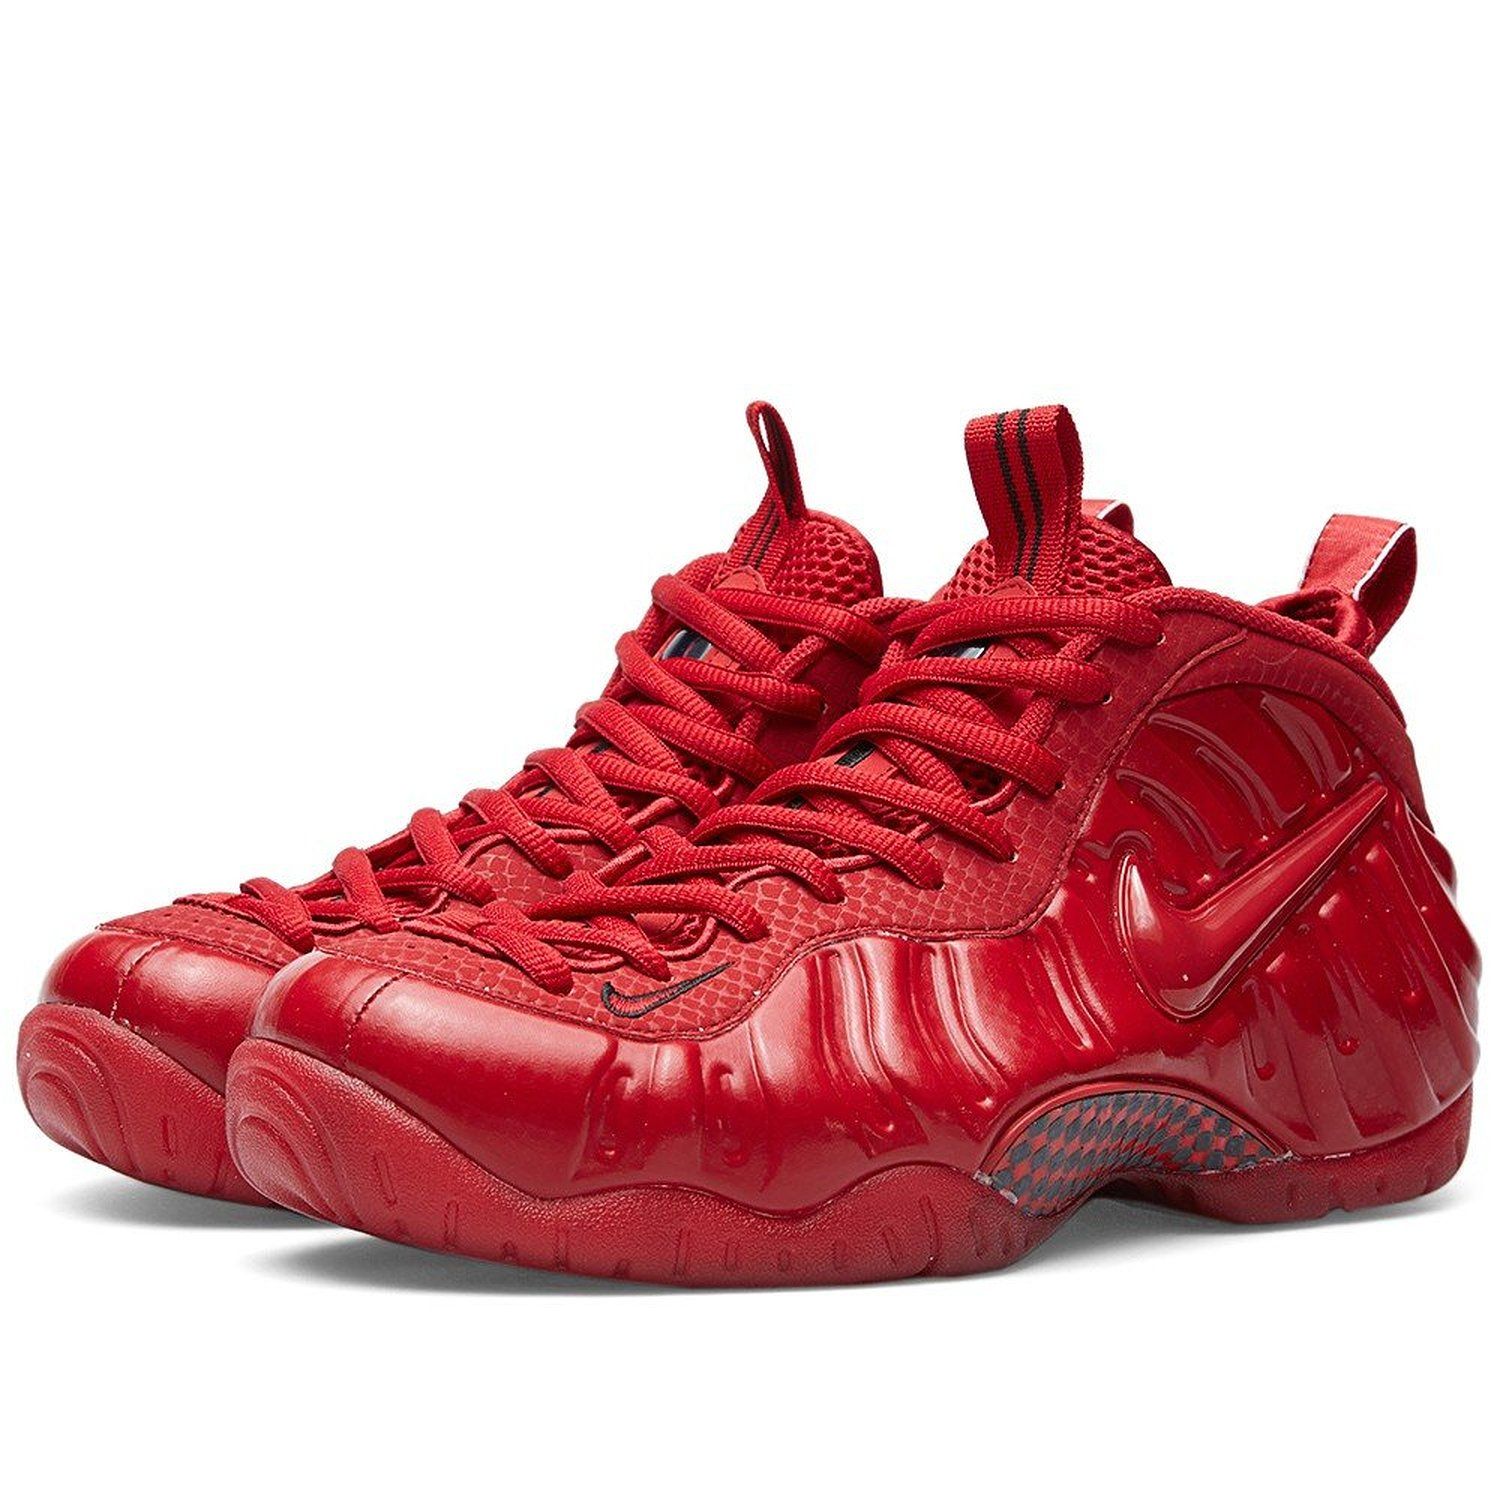 0c26de29b1d4a Nike Mens Air Foamposite Pro